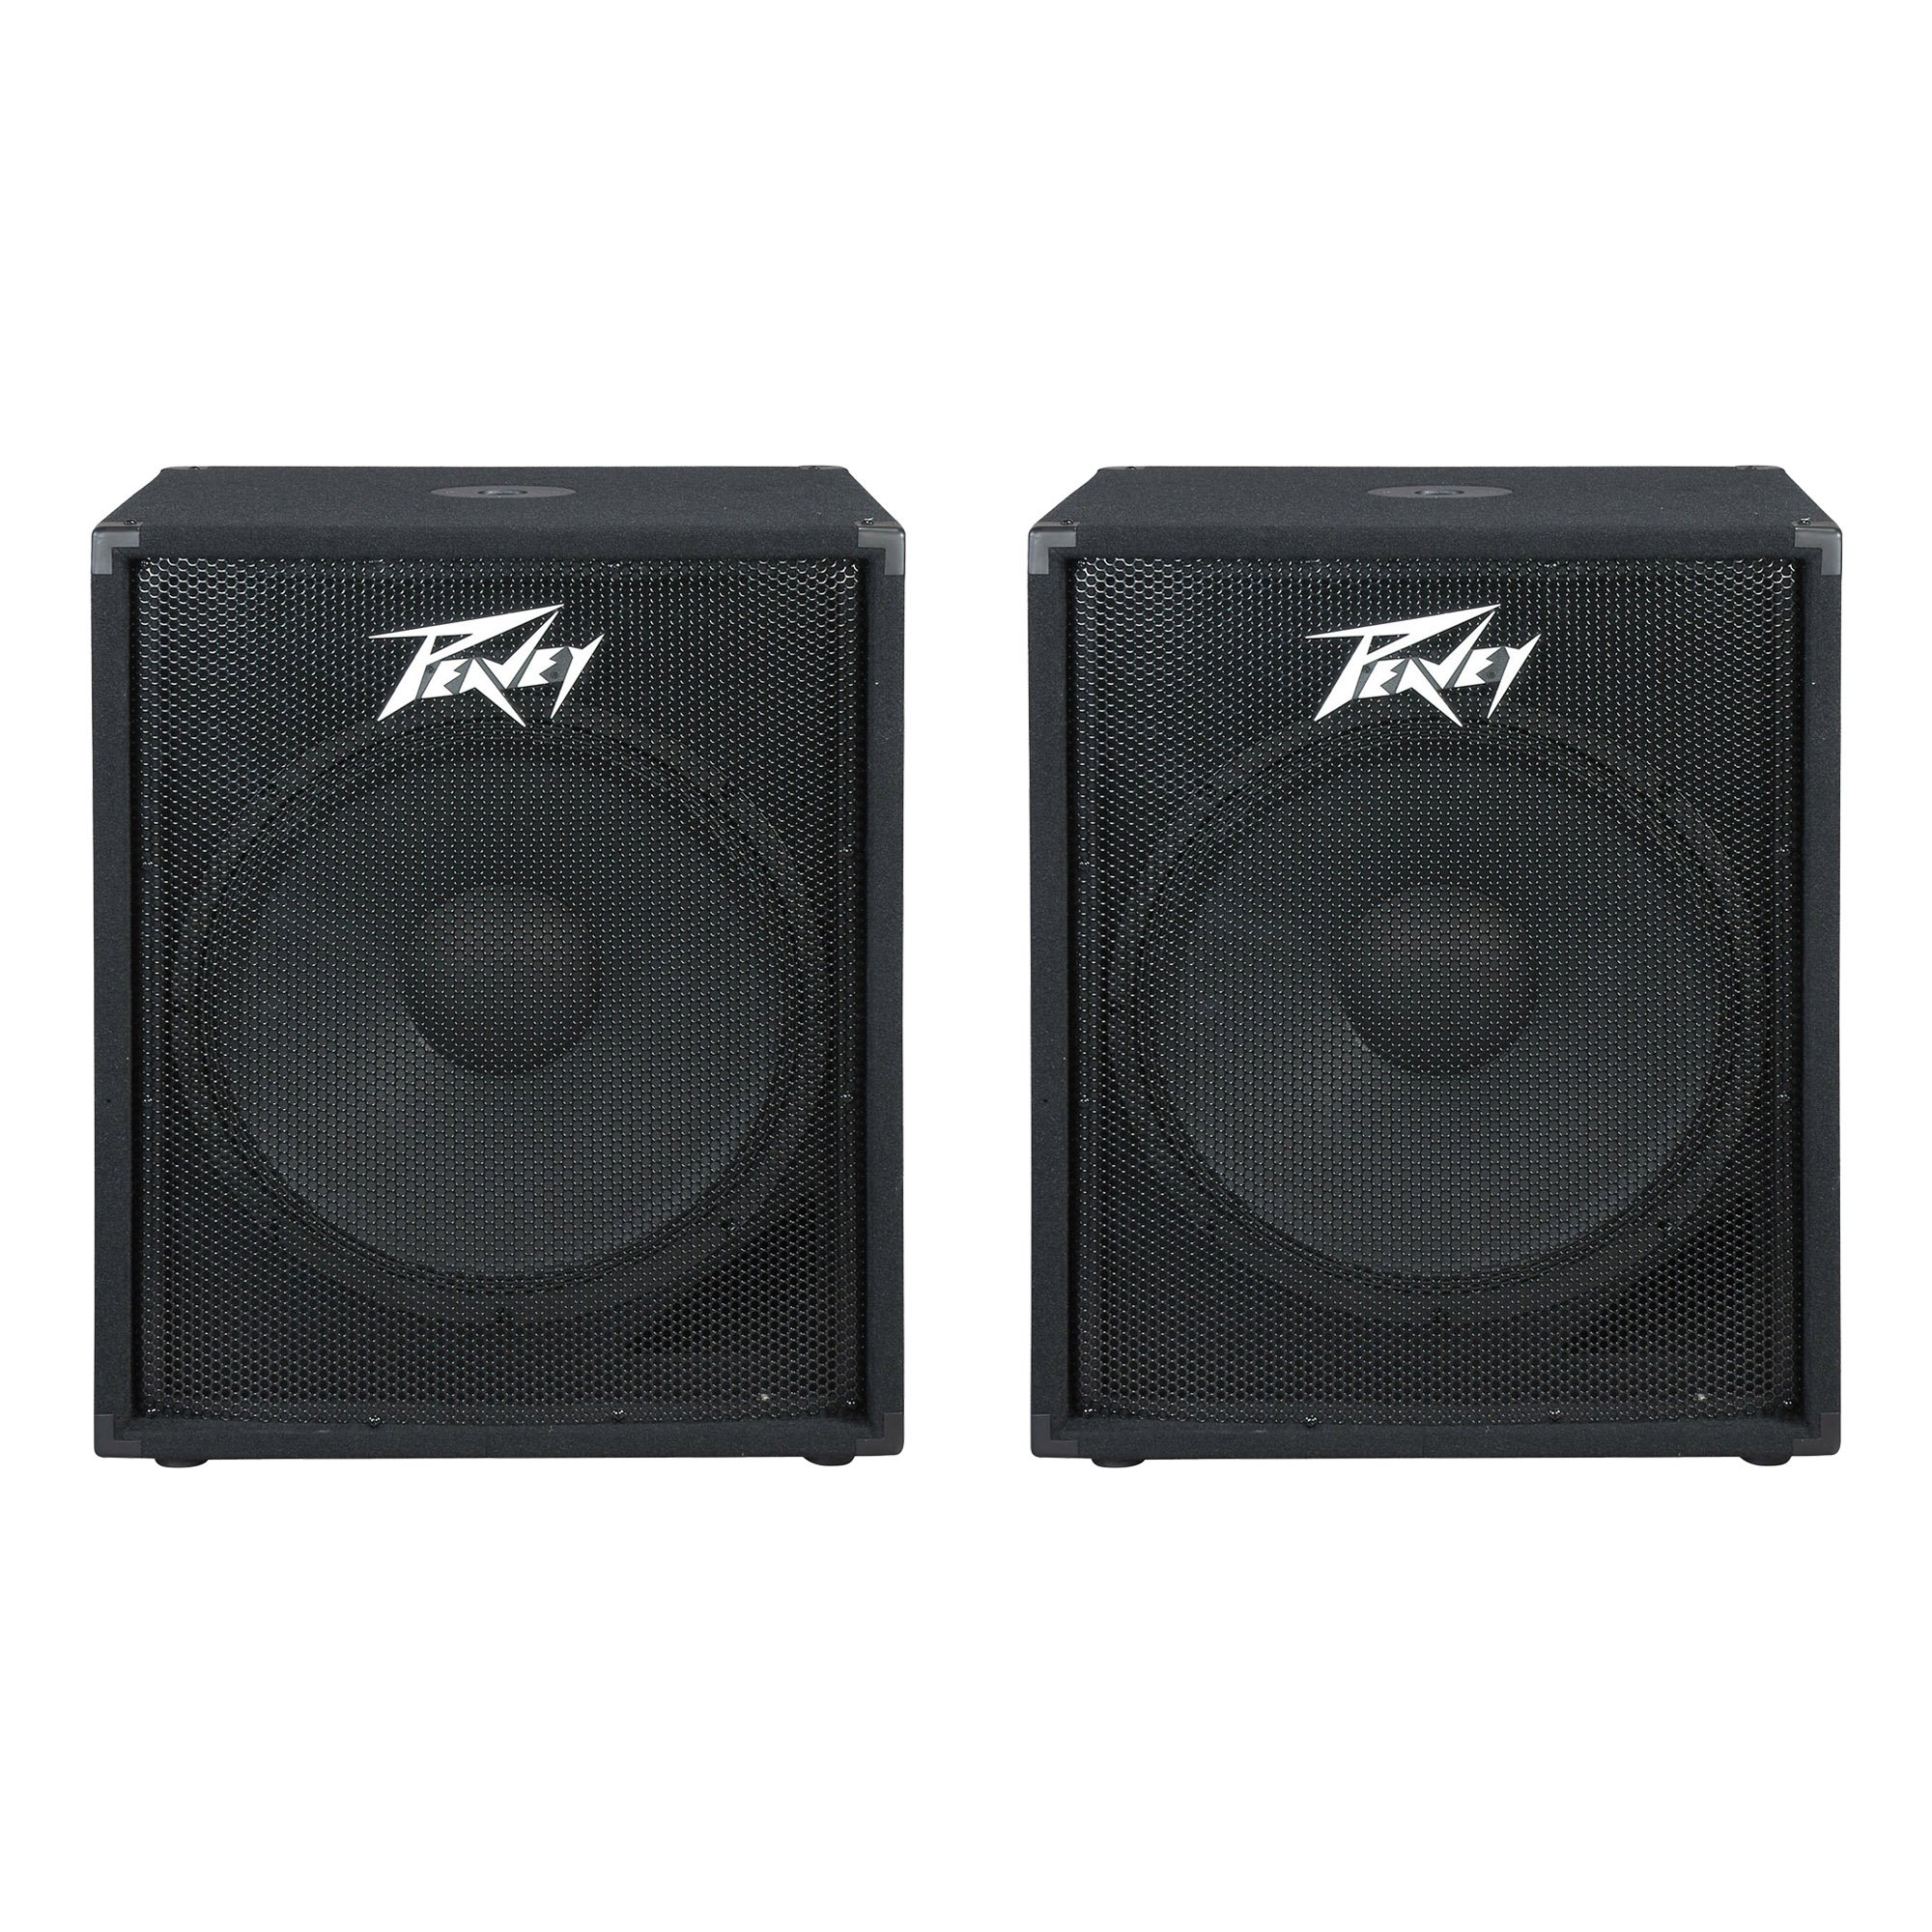 Peavey PV 118 400 Watt 18 Inch Compact Vented Heavy Duty Pro Subwoofer (2 Pack) by Peavey